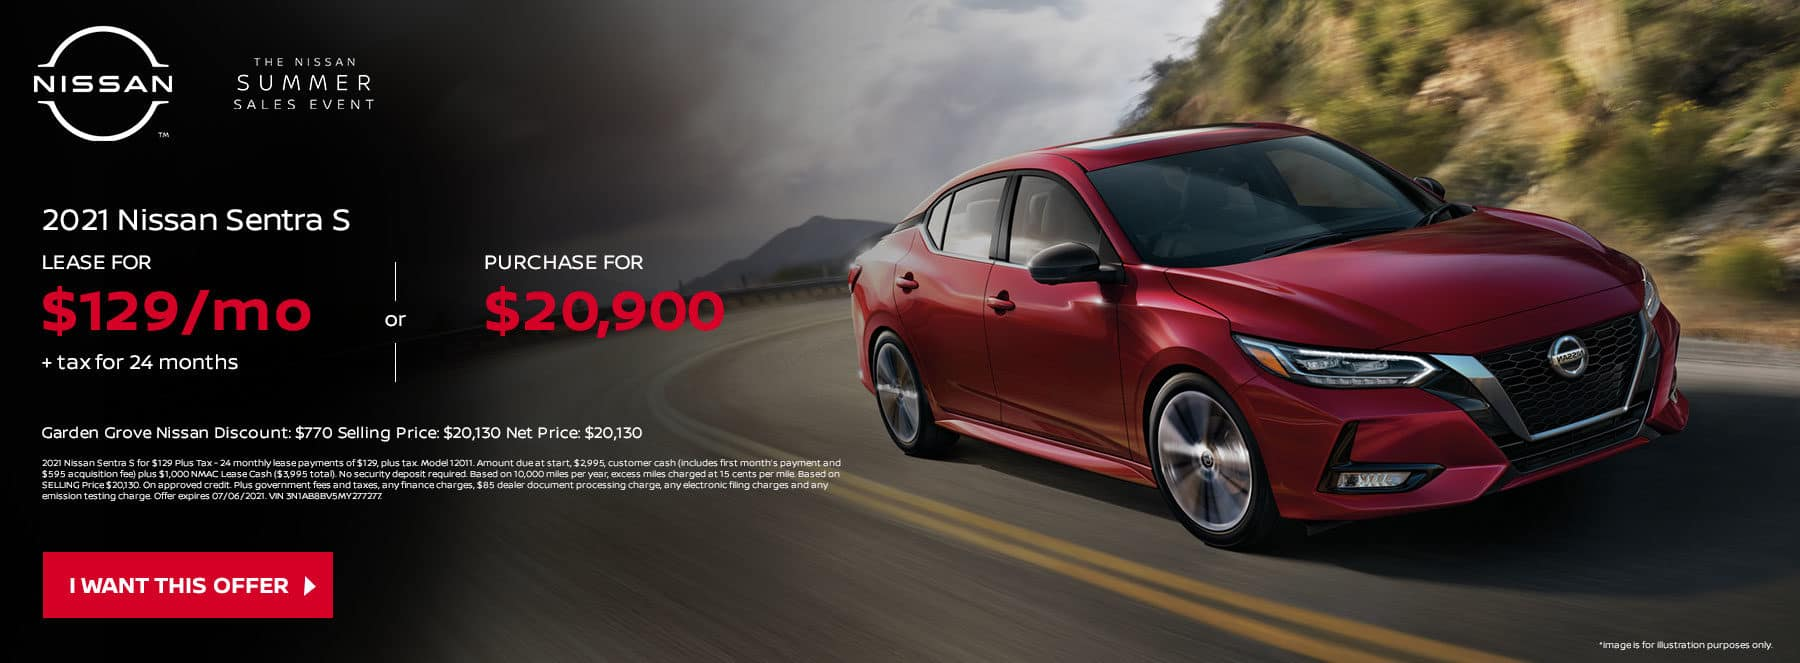 2021 Nissan Sentra S Subtext: LEASE FOR $129 Per Mo. + Tax for ONLY 24 months OR PURCHASE FOR